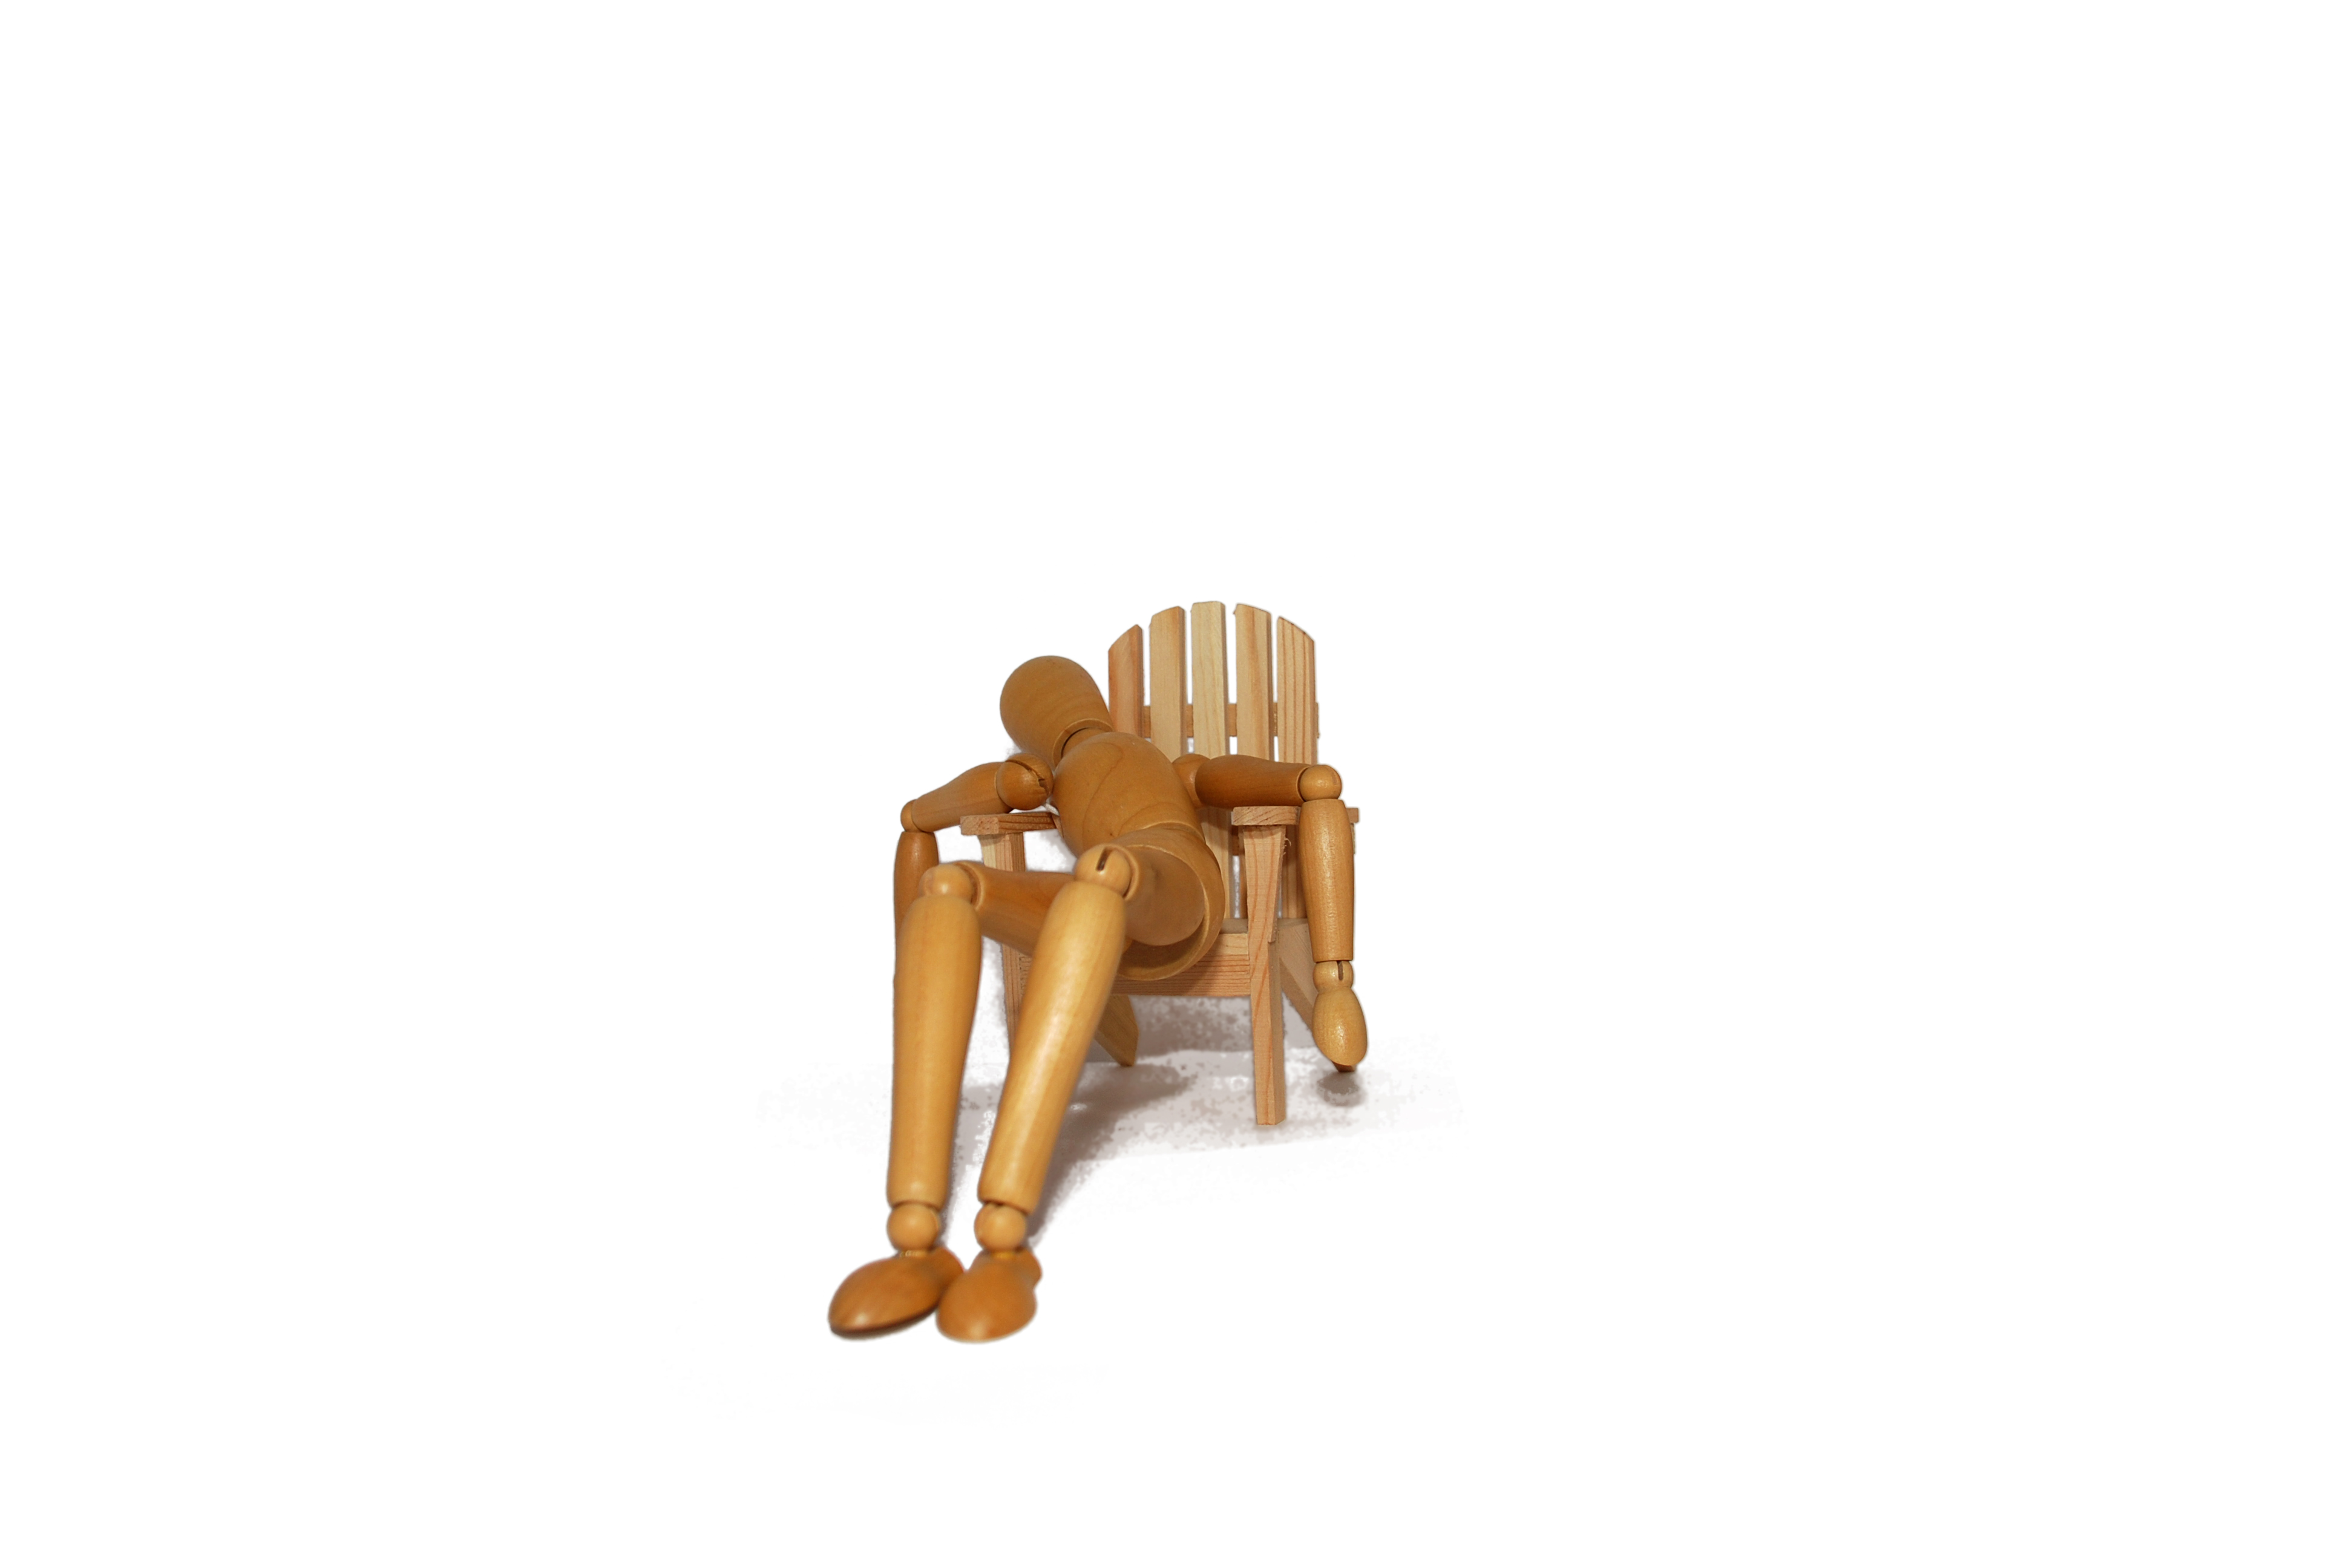 Wooden figure collapsed in a chair